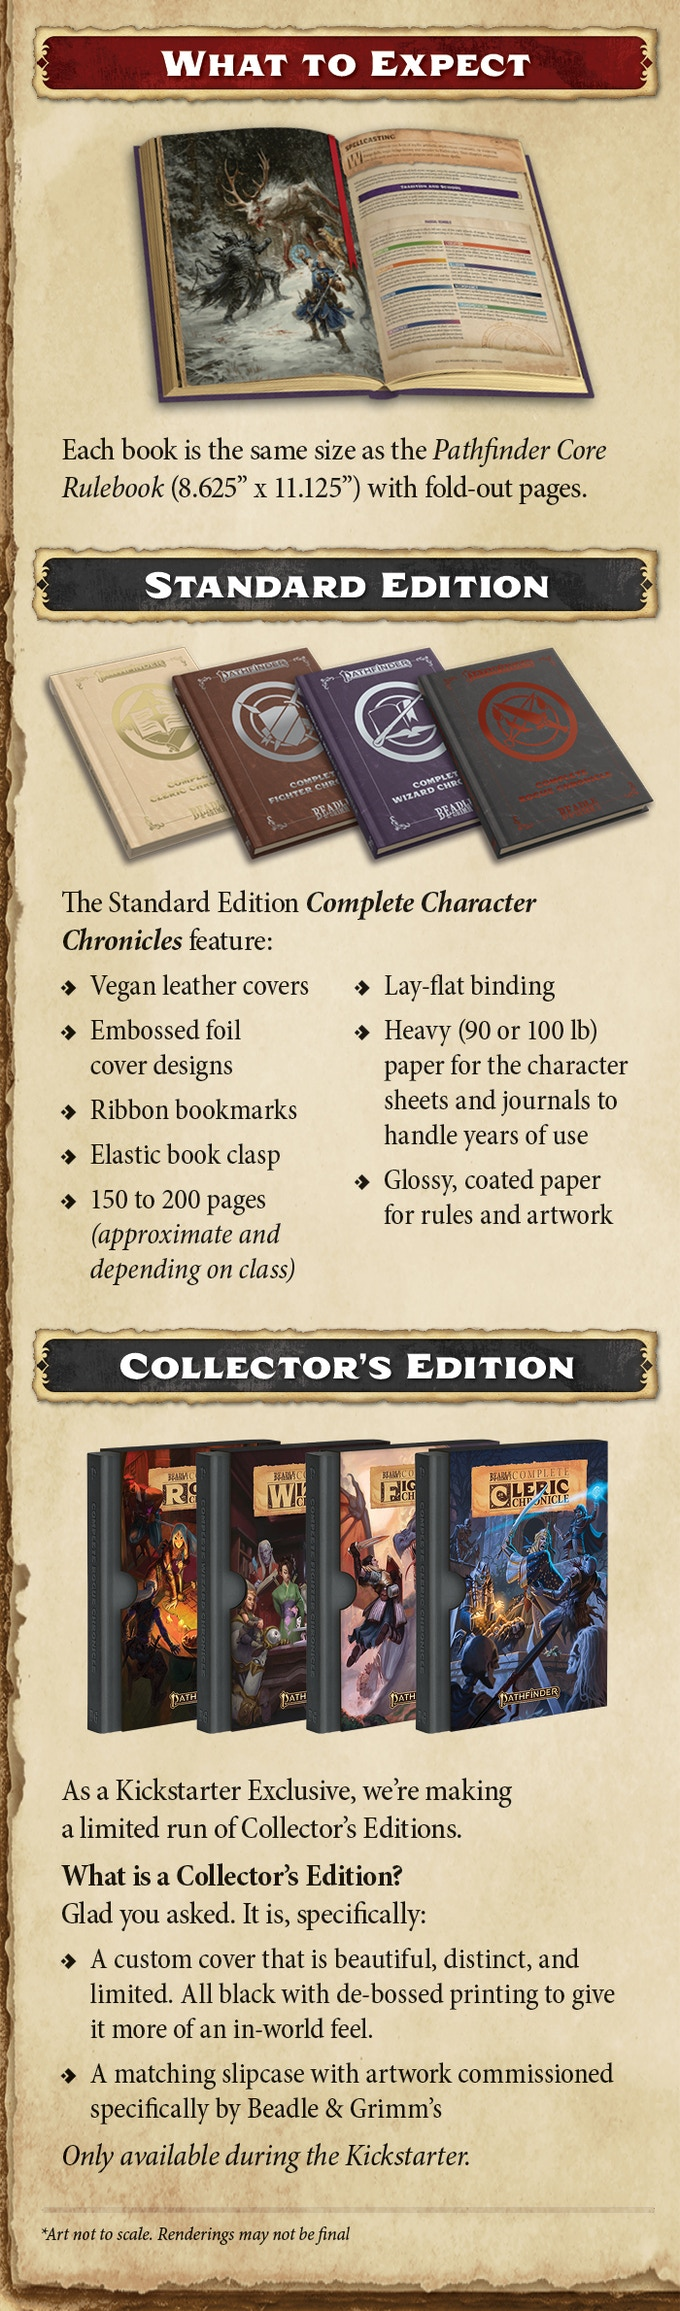 Complete Character Chronicles Contents - Beadle & Grimms